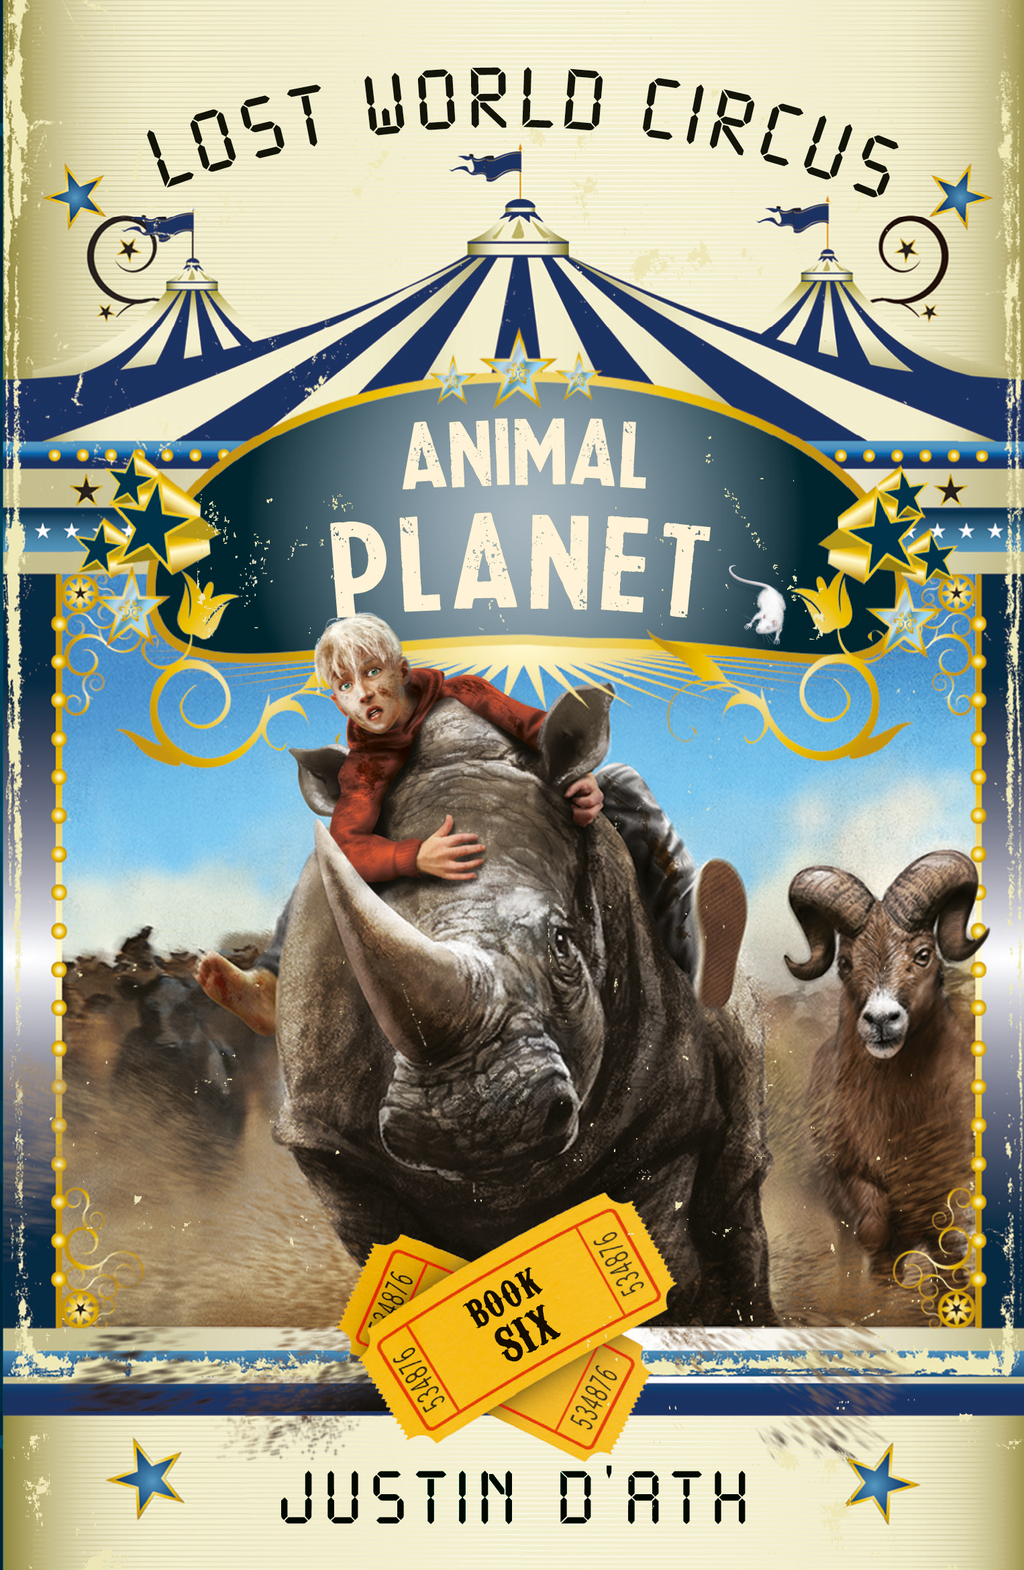 Lost World Circus Animal Planet Bk 6